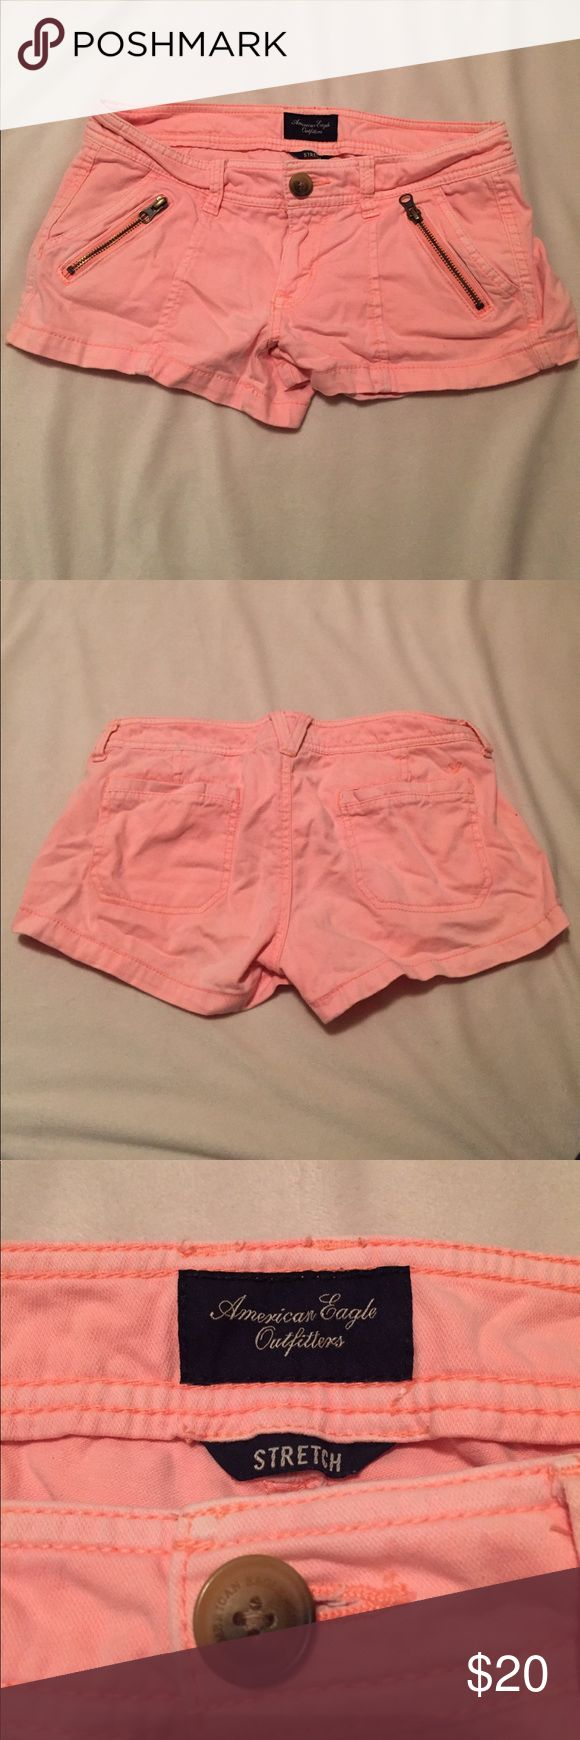 Size 4 Hot Peach American Eagle Outfitters Shorts These hot peach shorts are stretch by American Eagle Outfitters. Zippers are just accent decorations, but there are two pockets in the front and two in the back. In good condition. A perfect pop of color for the summer time. 98% cotton 2% spandex. American Eagle Outfitters Shorts